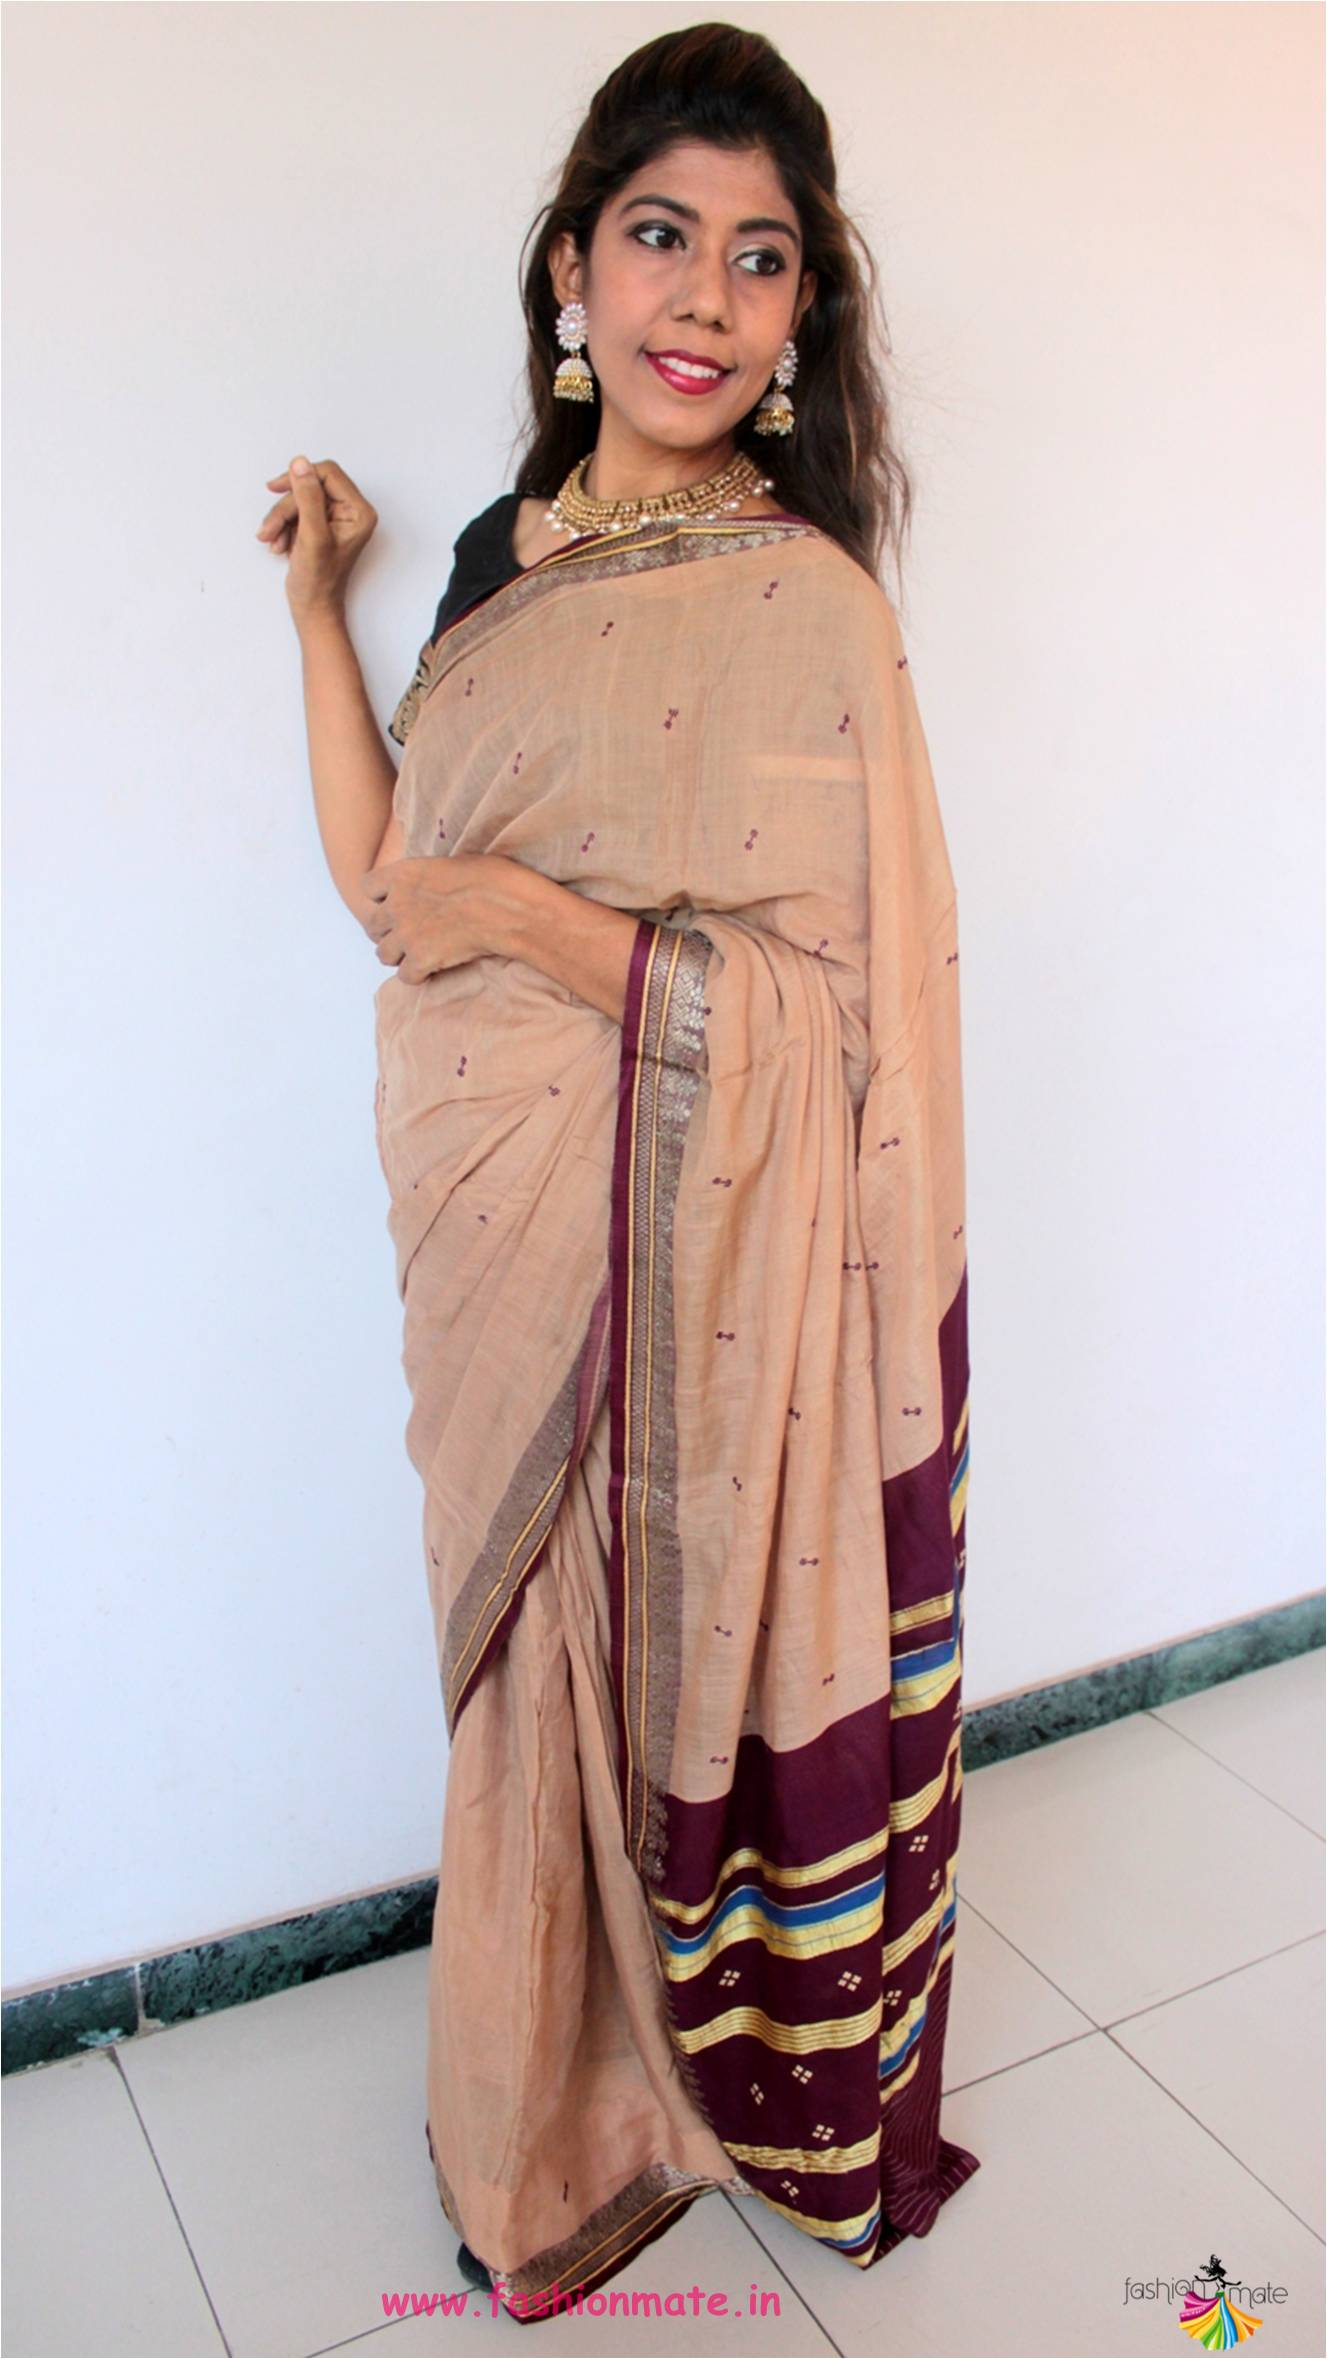 OOTD – Cotton Saree for Traditional look and Monsoon makeup